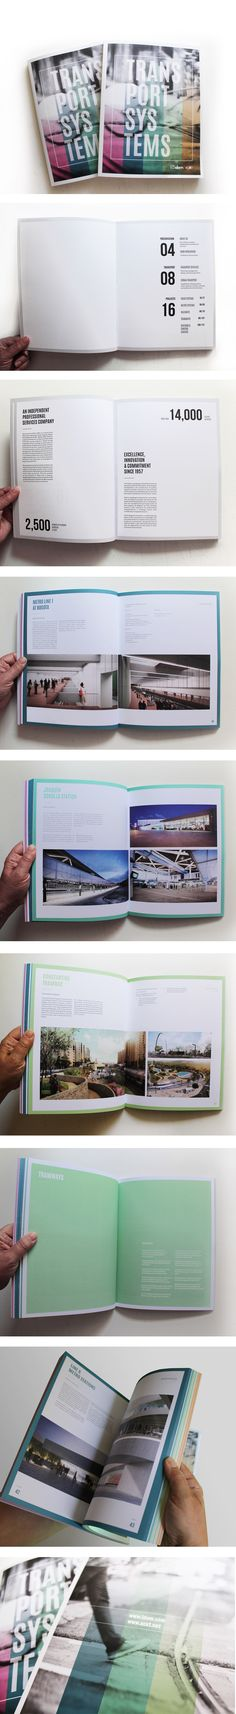 ARCHITECTURE & URBAN TRANSPORT SYSTEMS BOOK #editorial #design  http://www.muak.cc/?ds-gallery=urban-transport-systems-book